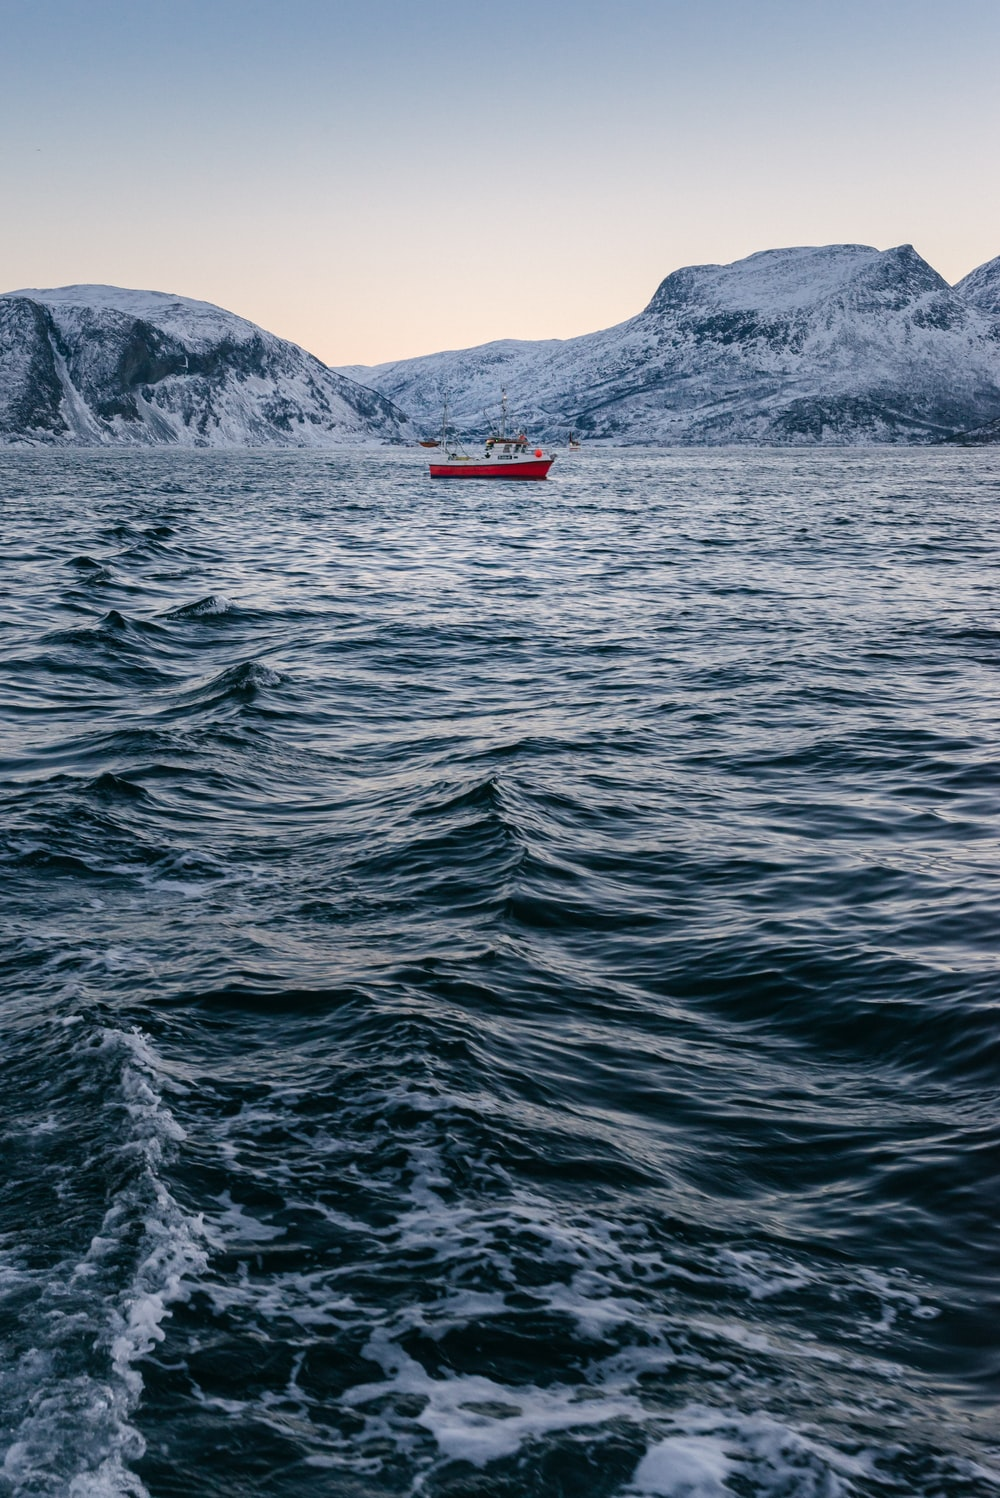 red boat in on body of water